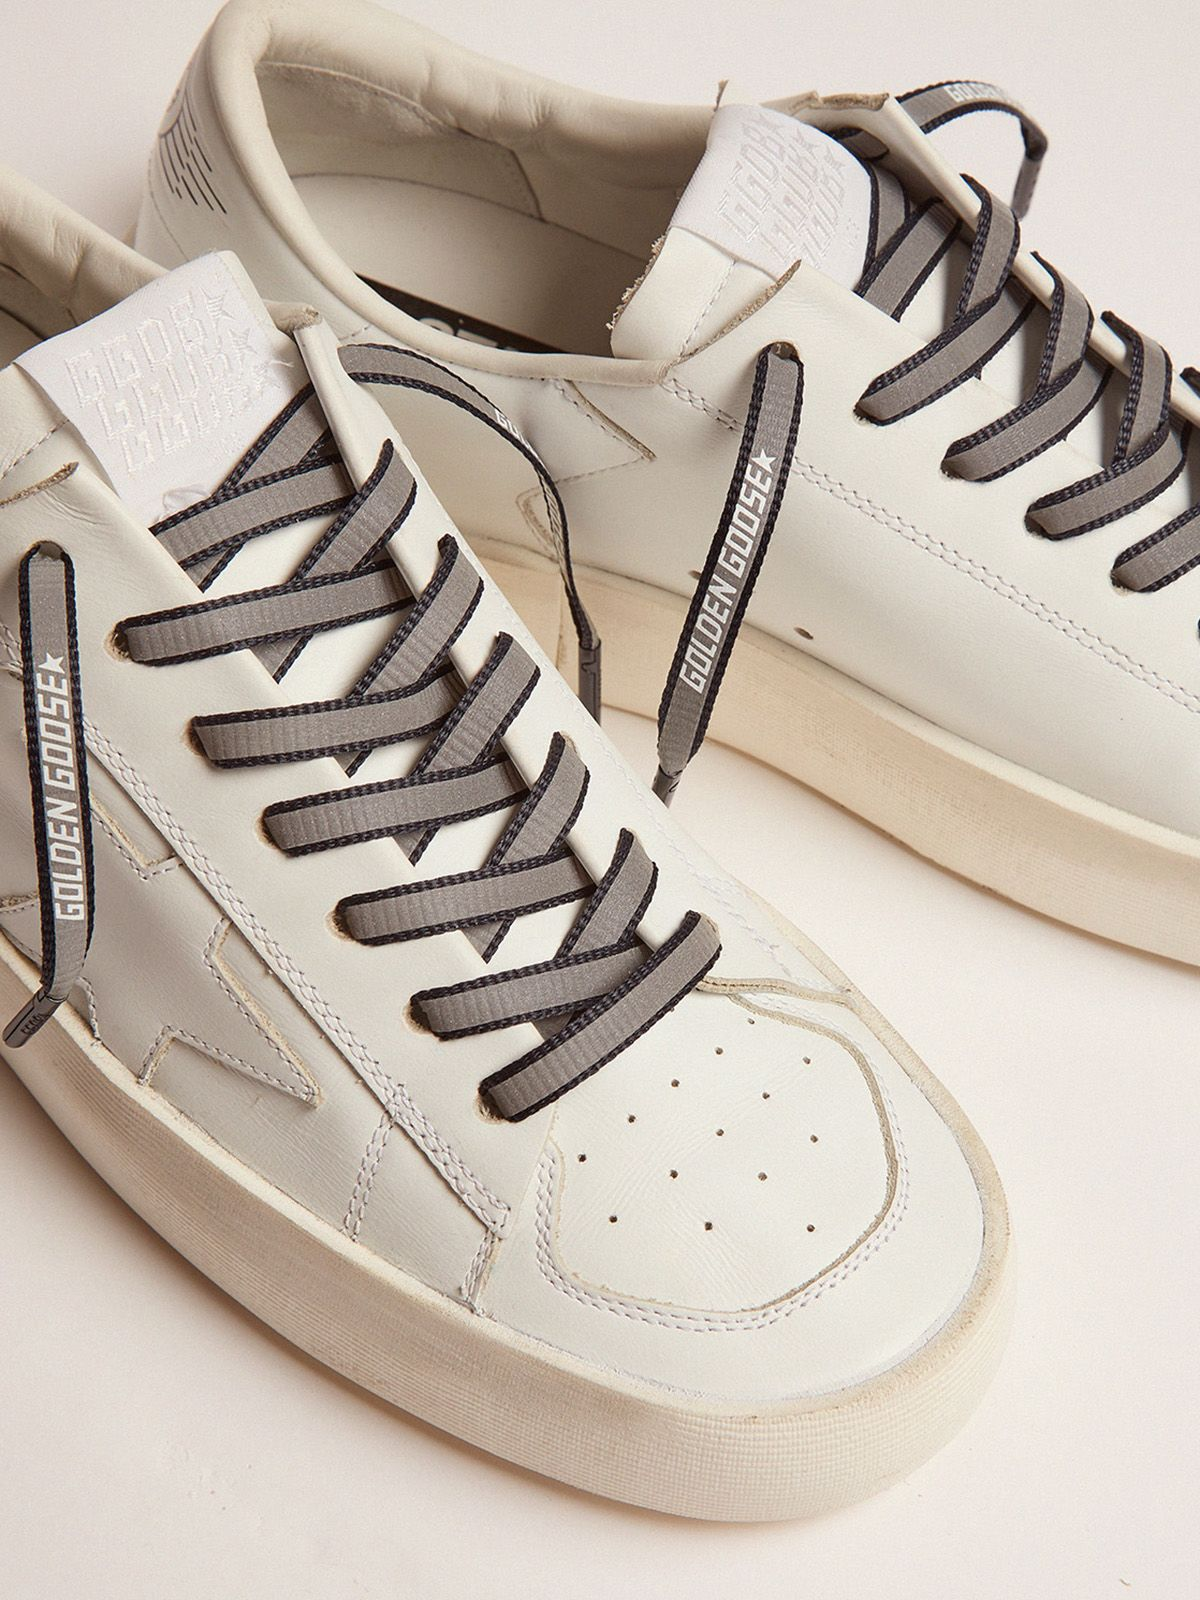 Golden Goose - Women's blue reflective laces with logo in